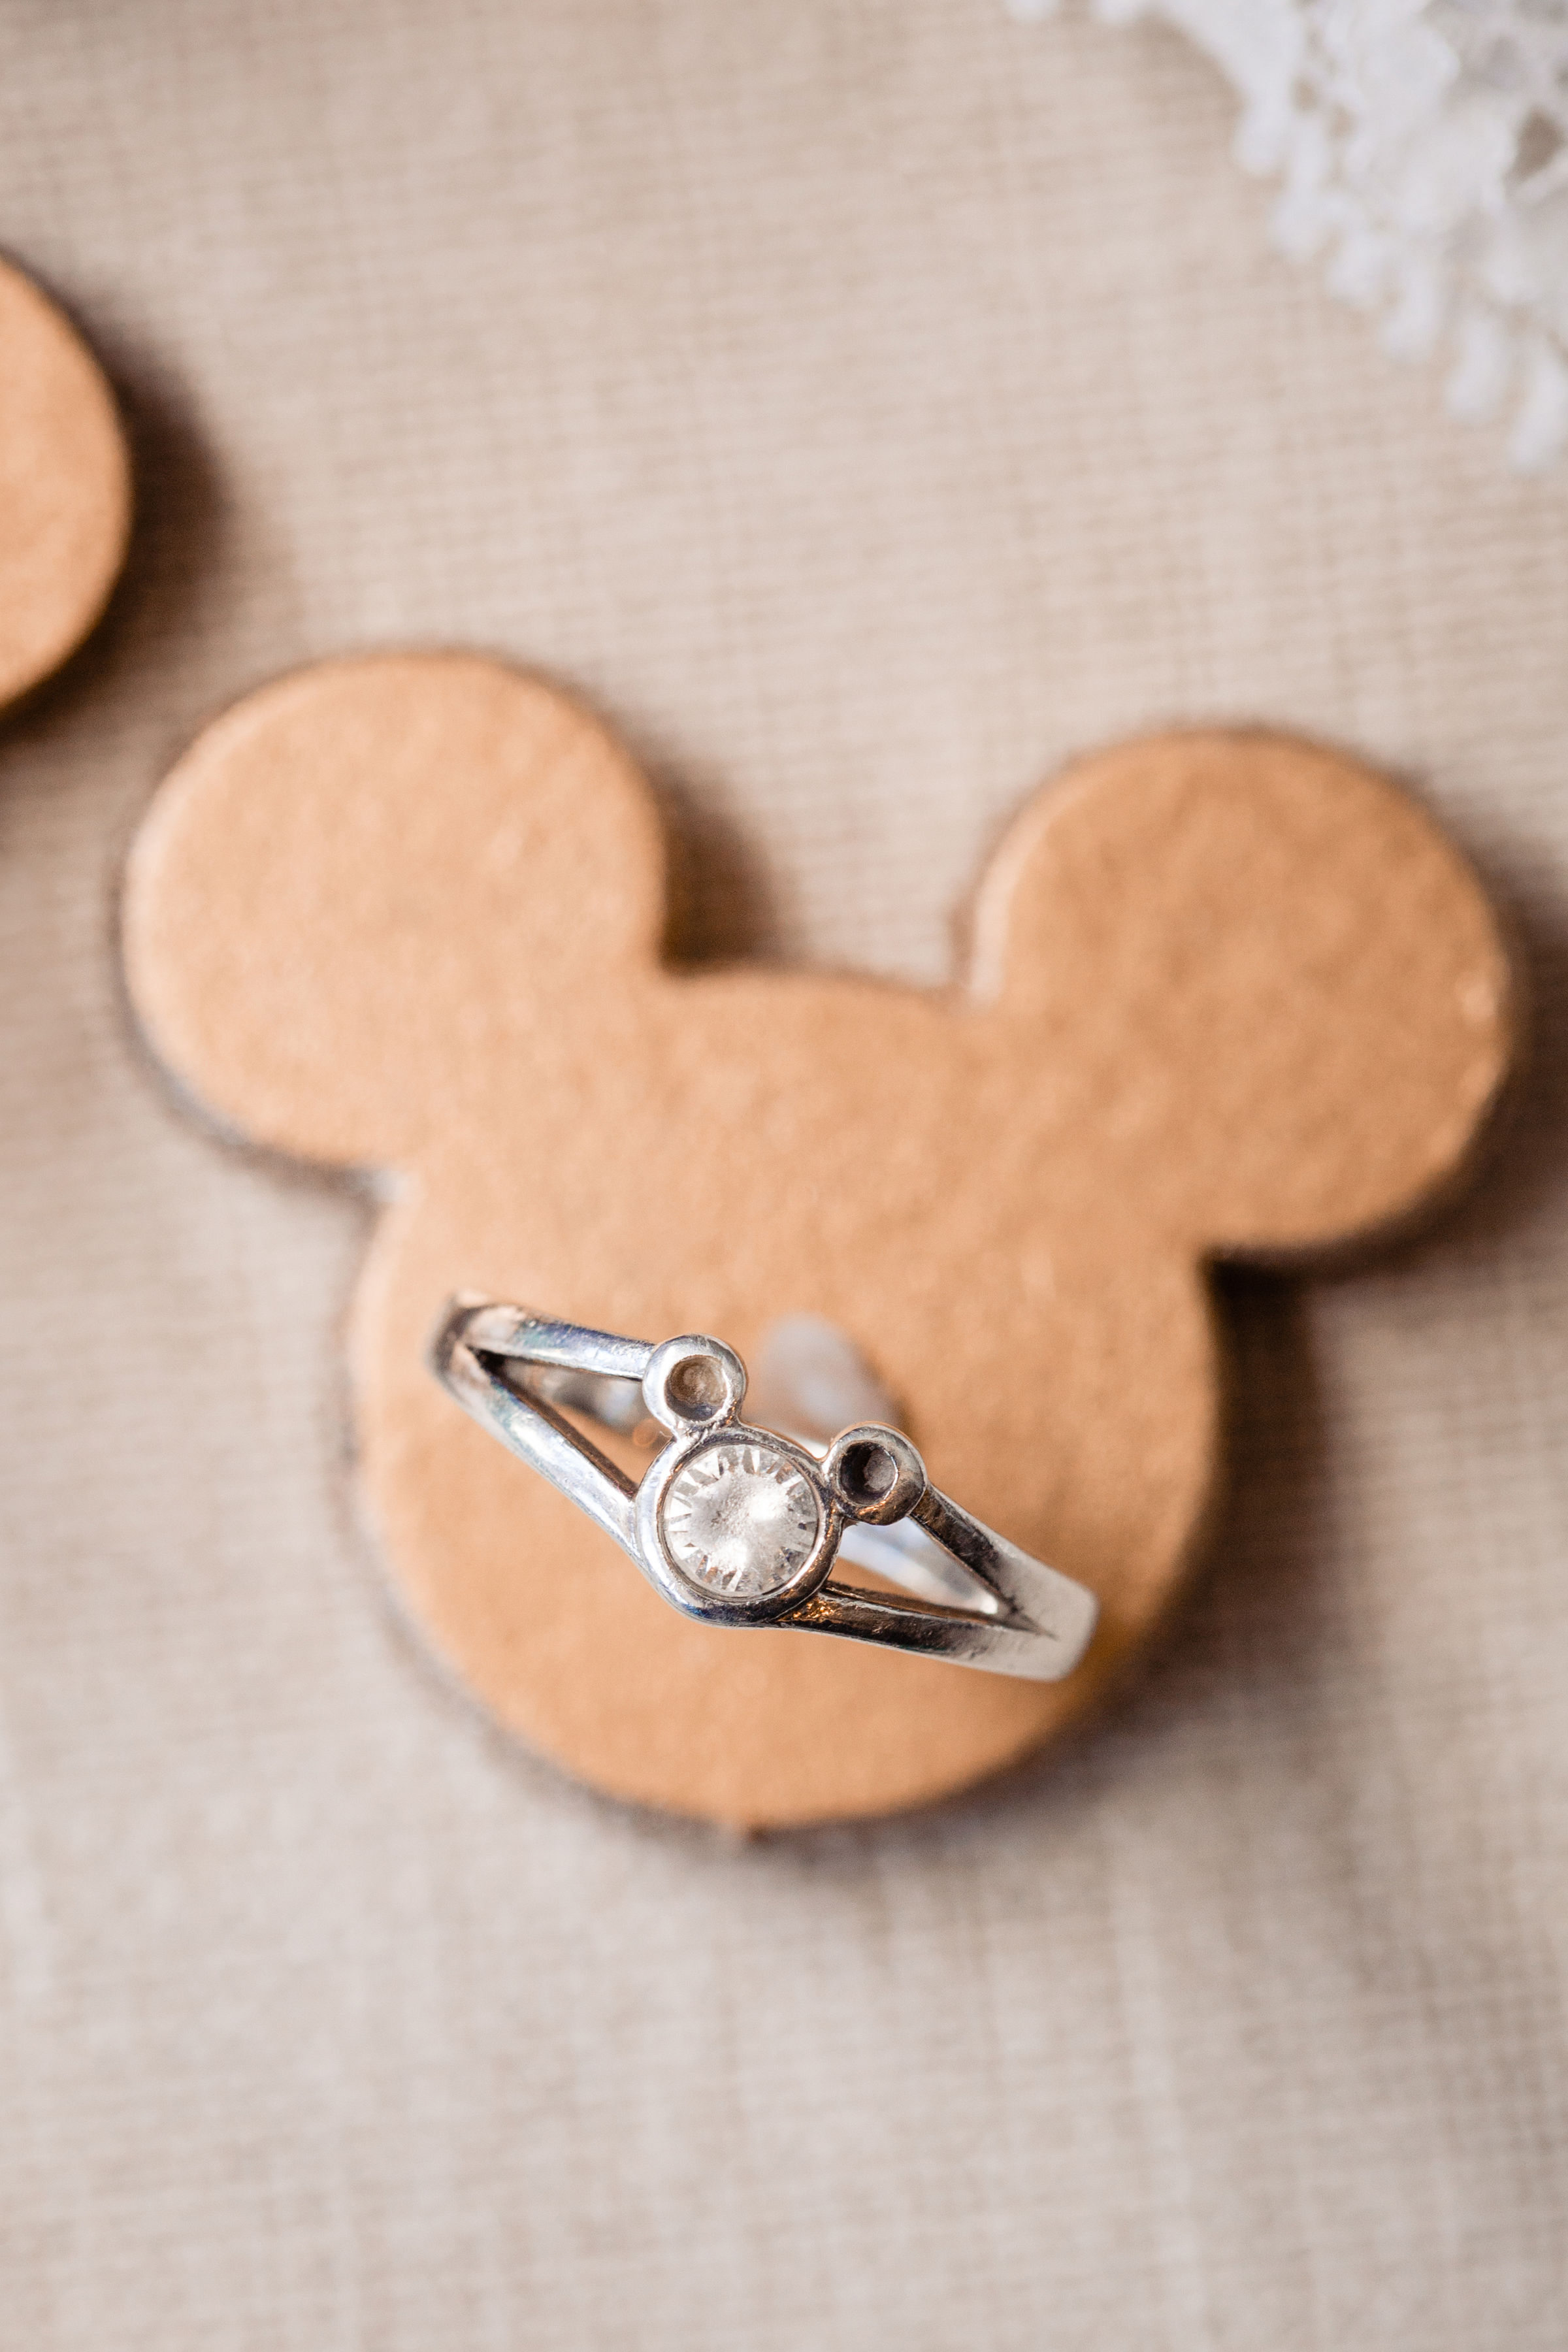 Mickey Ears Engagement Ring